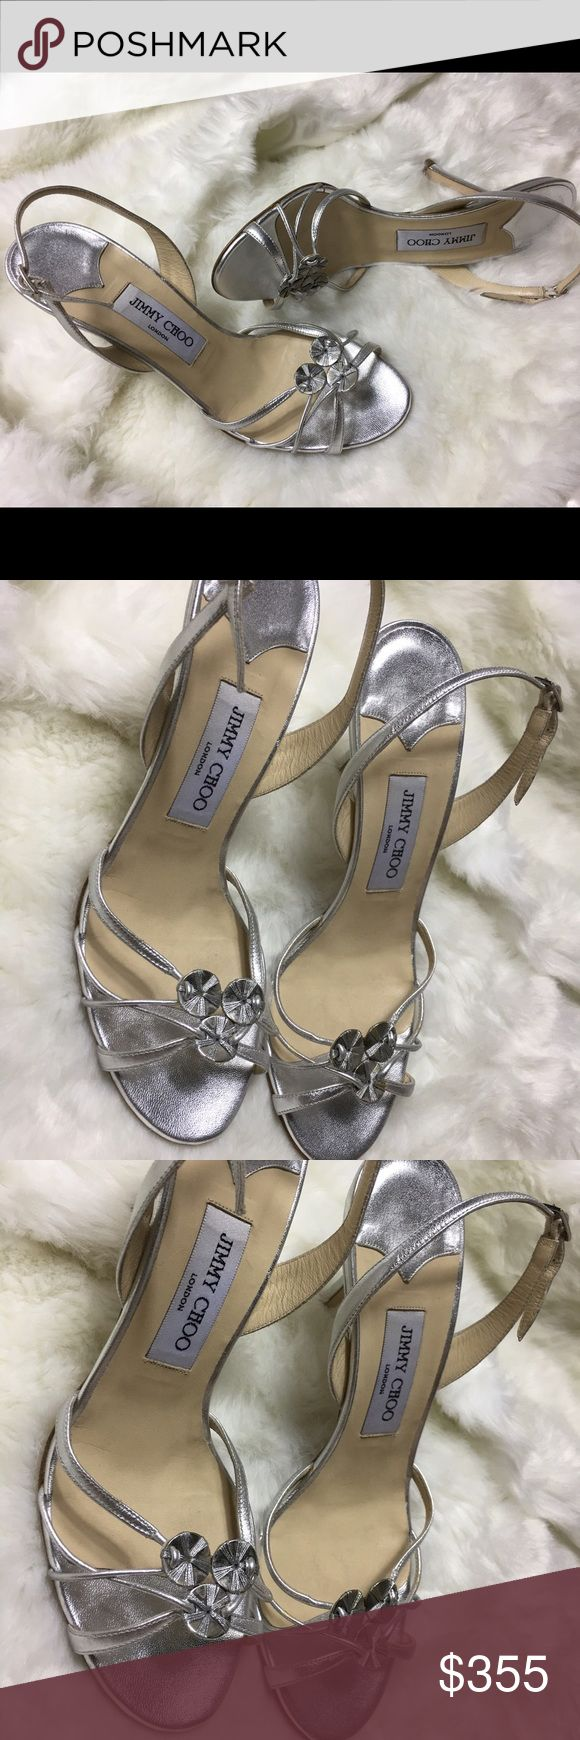 Sexy JIMMY CHOO metallic silver strappy sandals Gorgeous JIMMY CHOO metallic strappy sandals perfect for wedding occasions or any event party sz 39 VERO CUDIO made in Italy Jimmy Choo Shoes Sandals